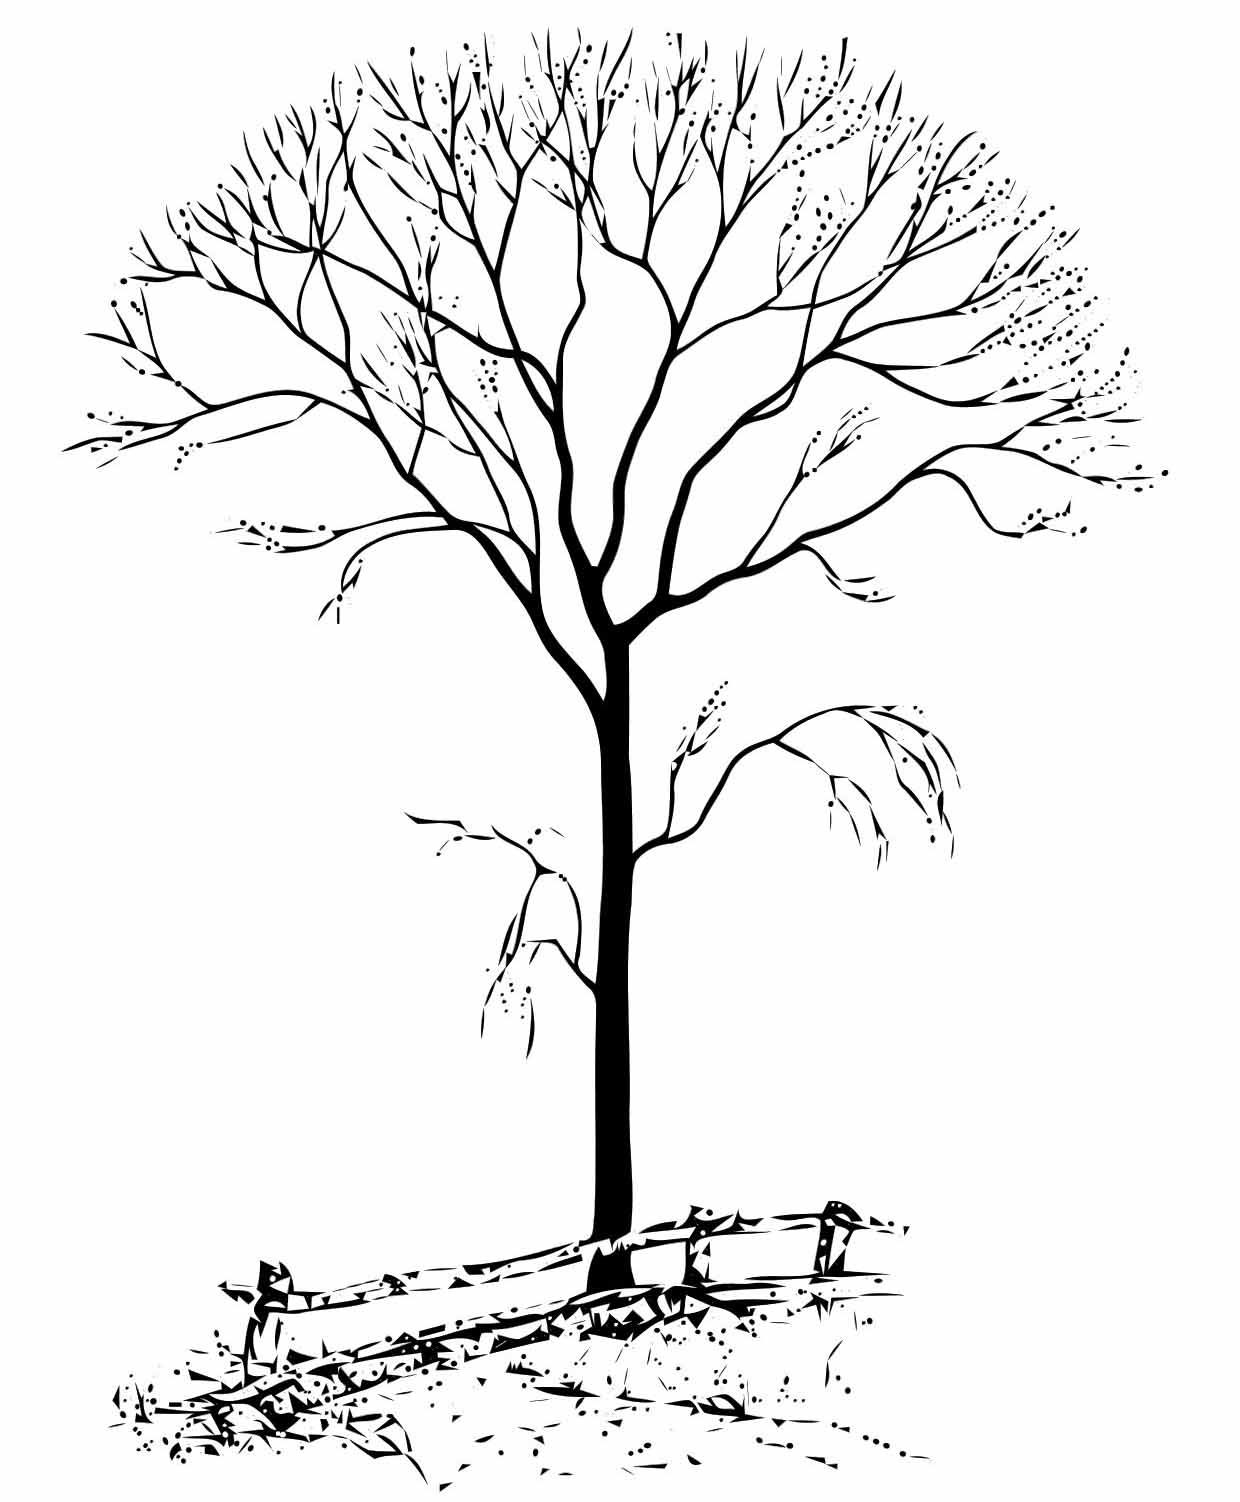 Tree Could Be Use For All Seasons With The Right Color Of Leaves And For Winter As Is With